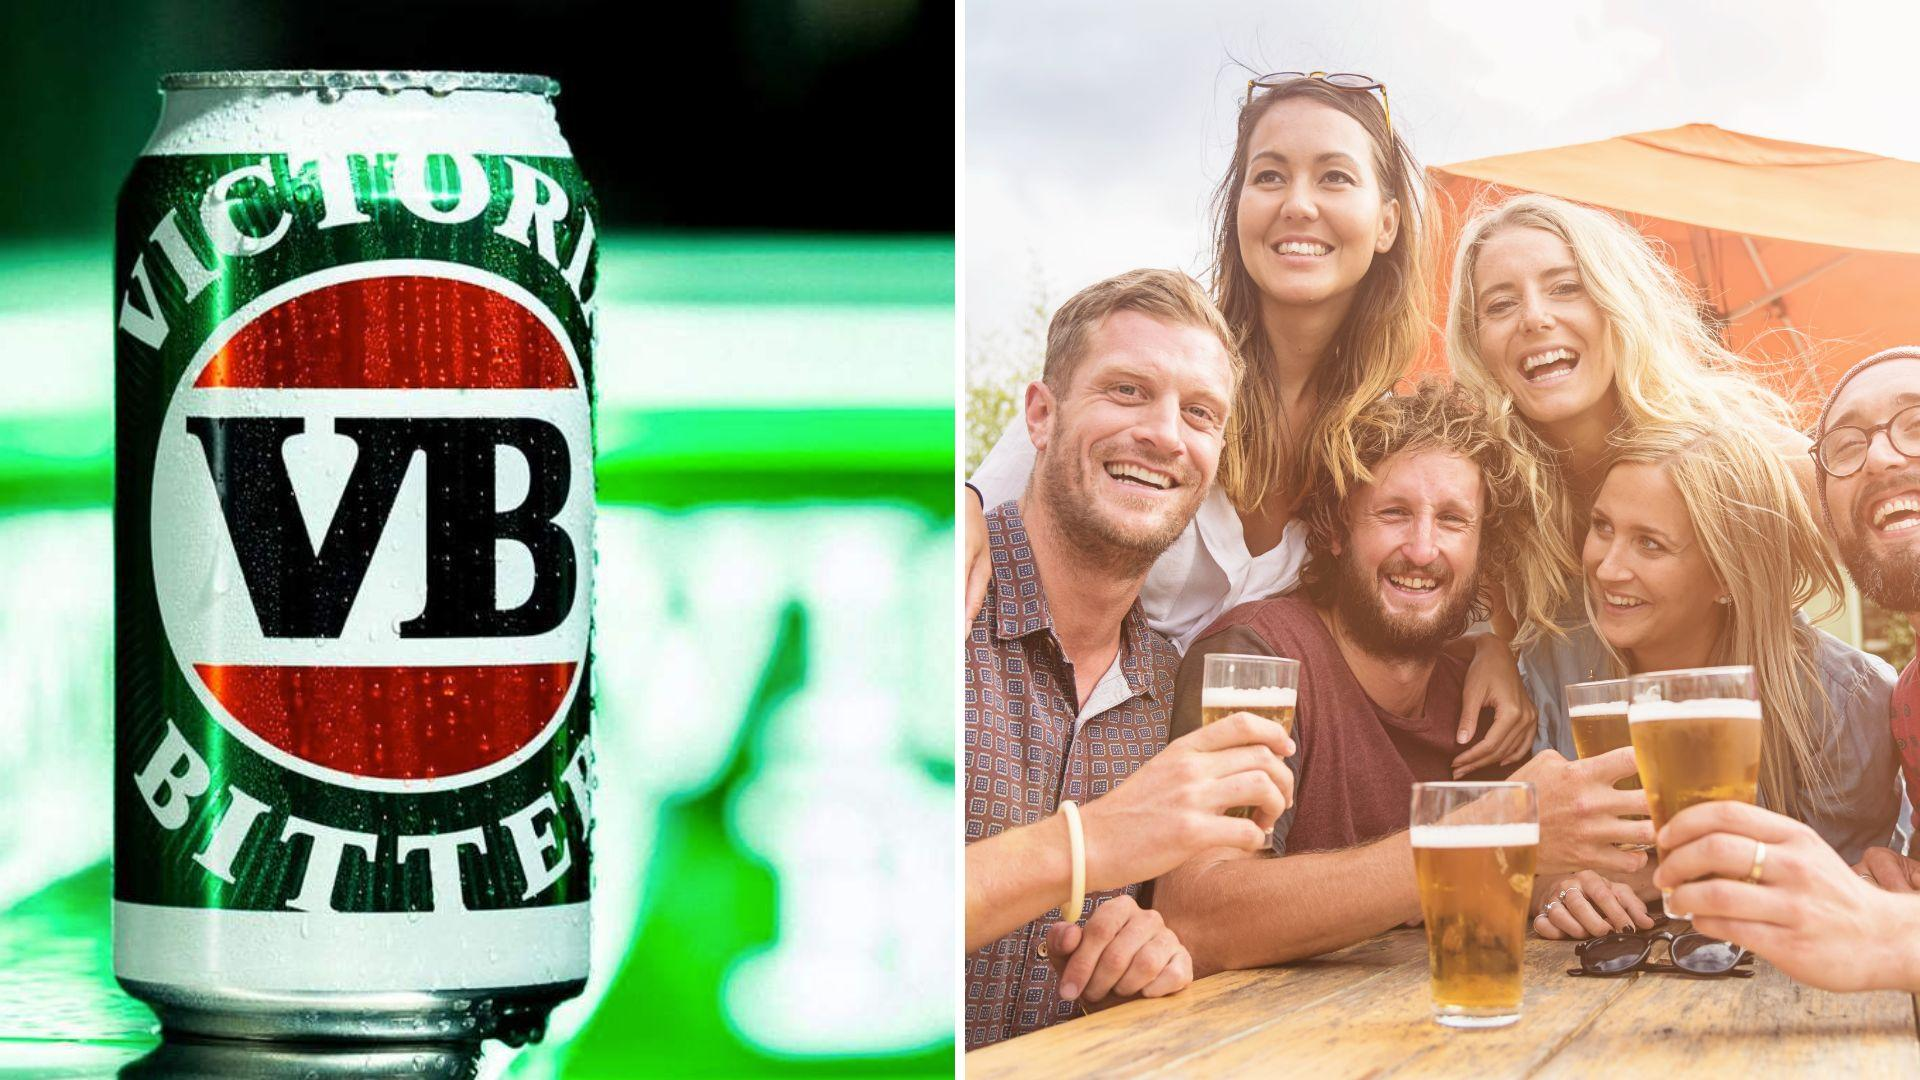 FREE BEER across Australia on Sunday: How to get yours